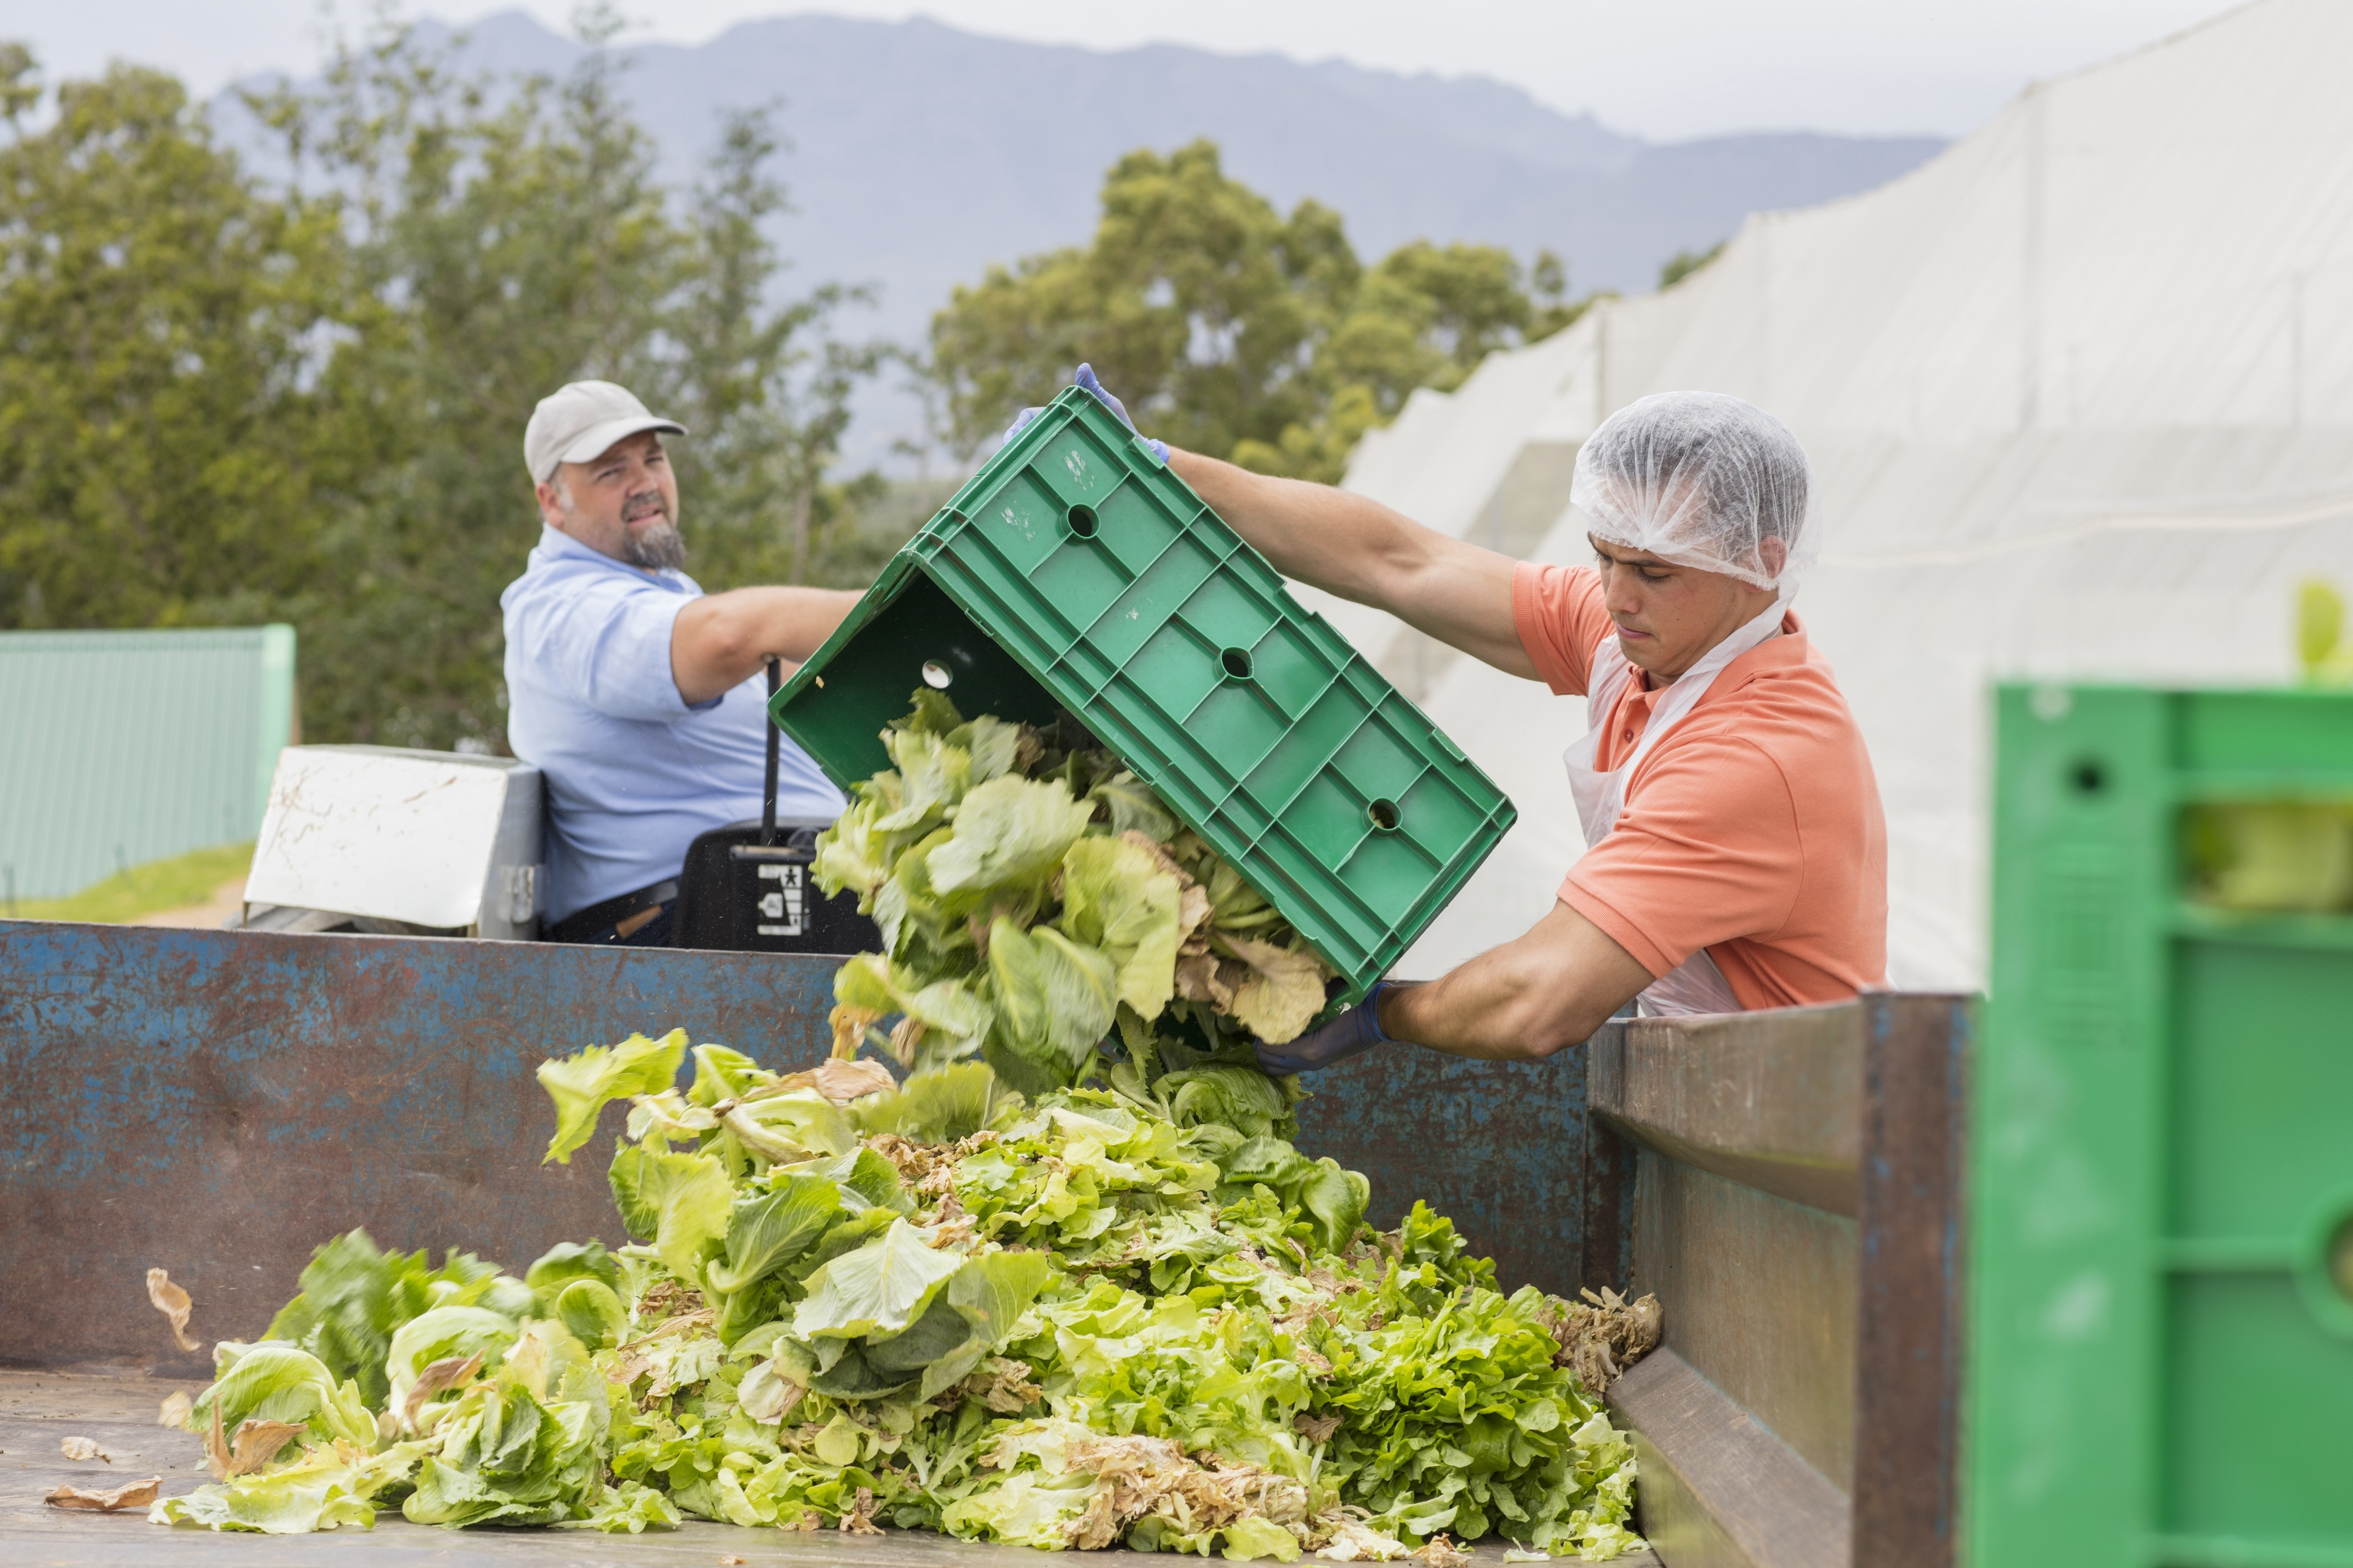 Workers on a farm dumping out old cabbage food waste.